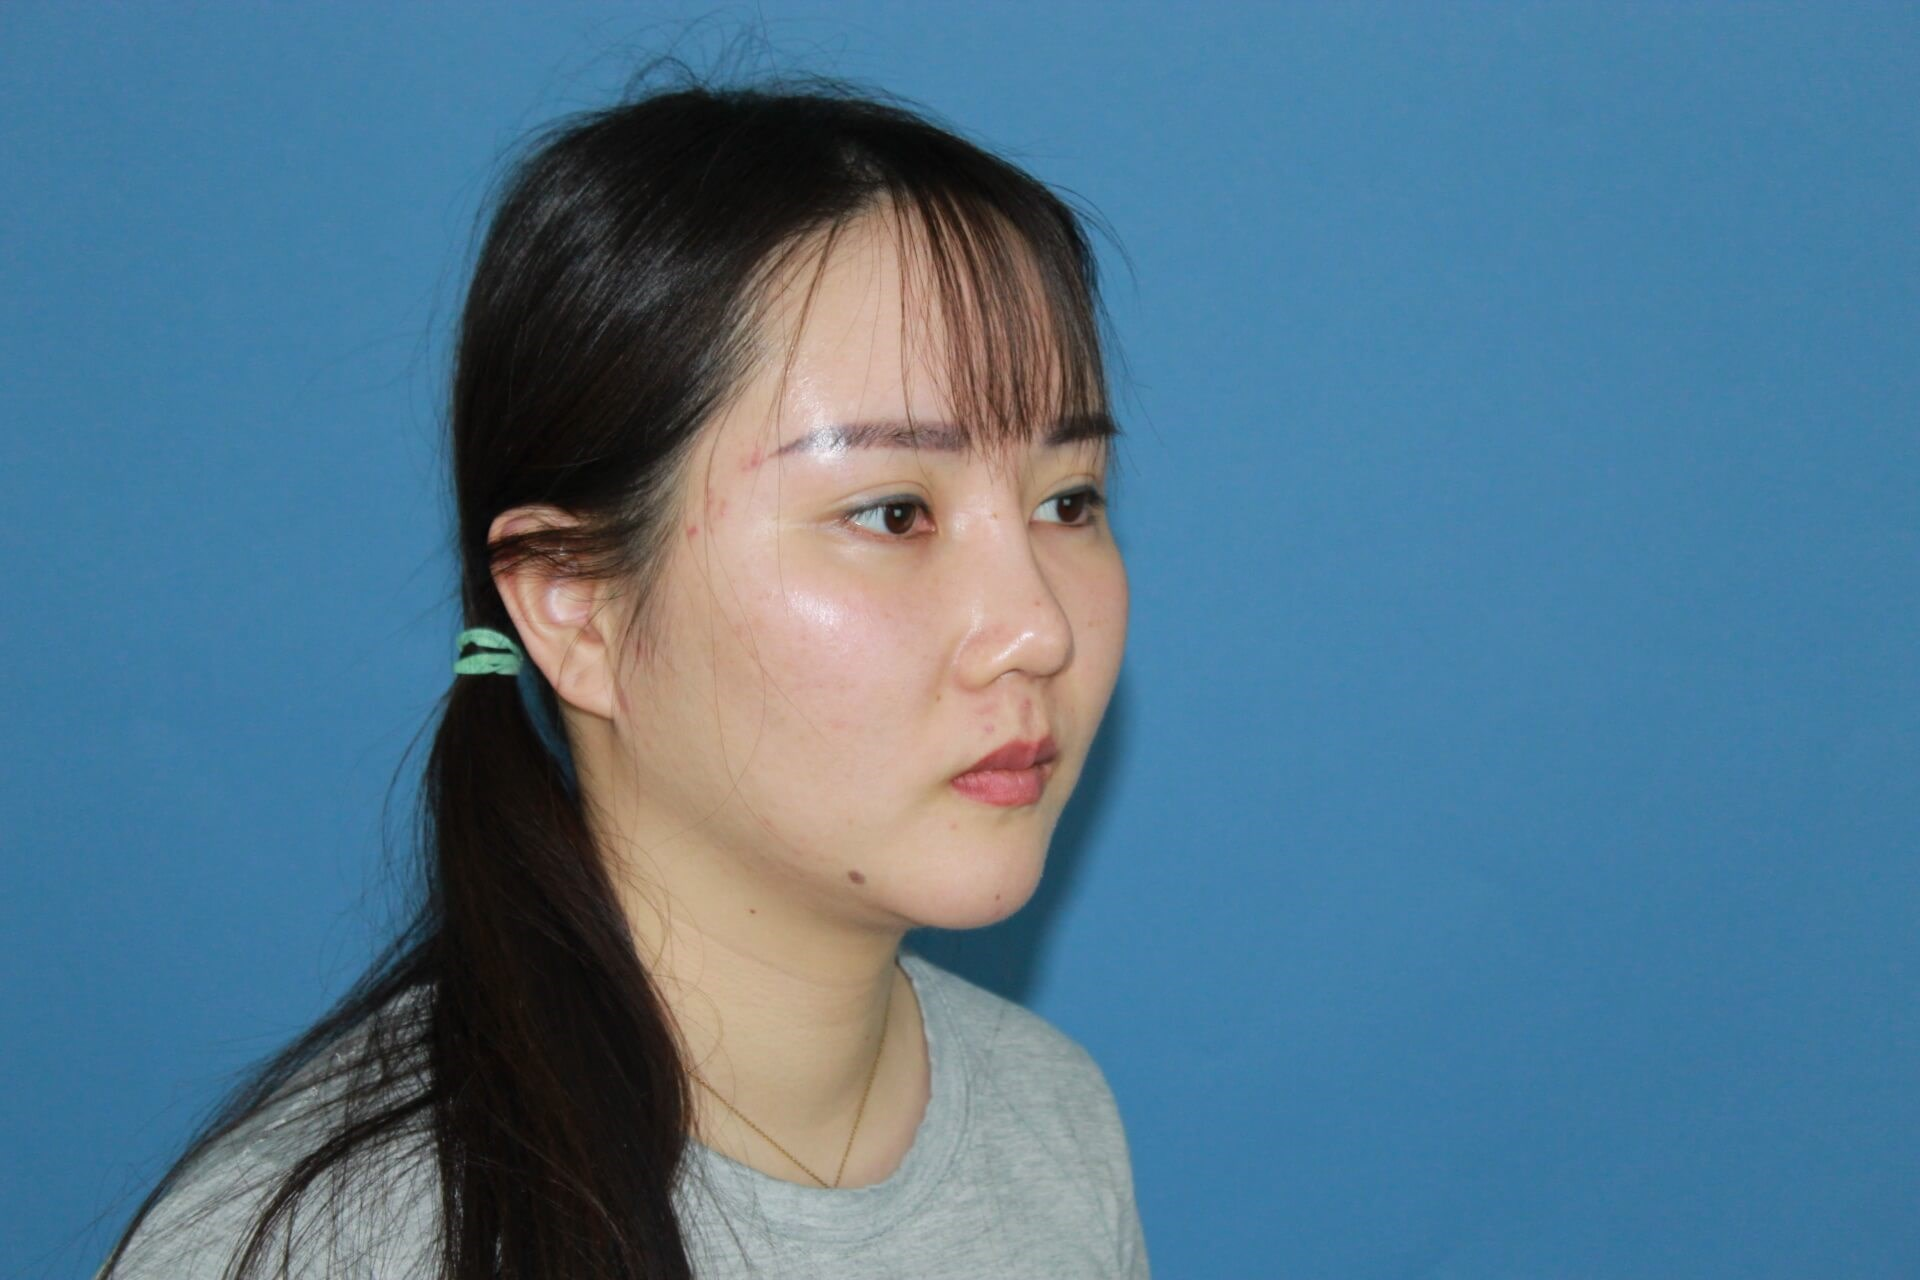 Asian Revision Rhinoplasty After